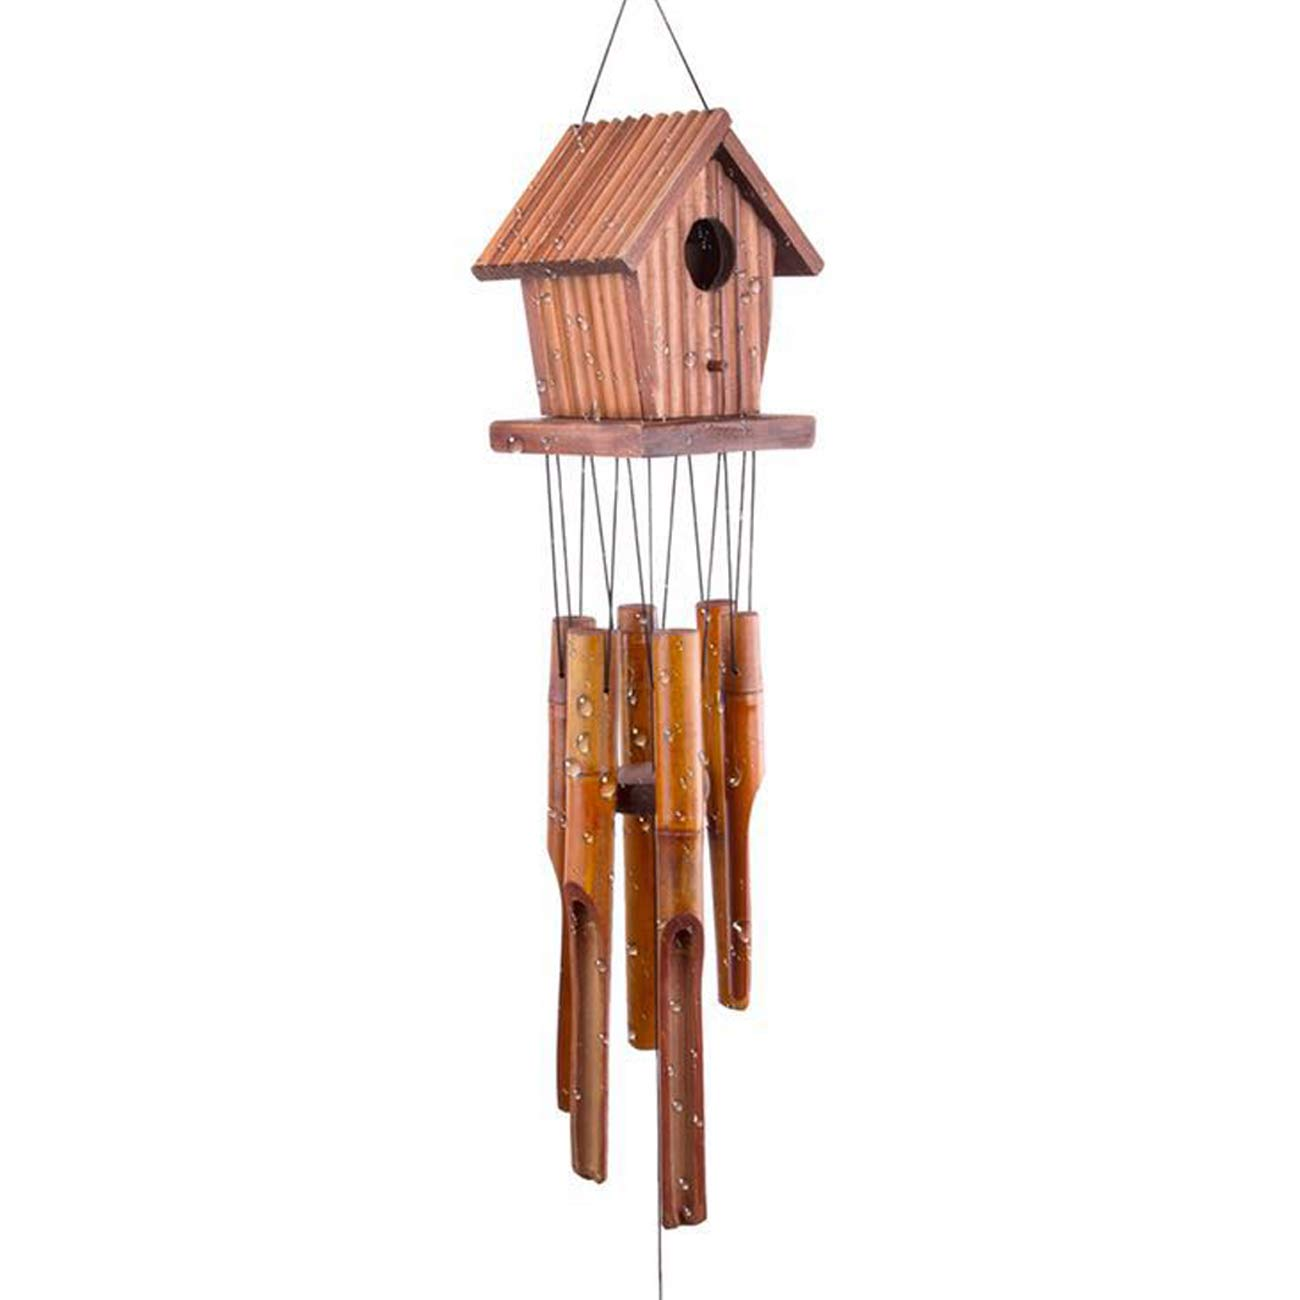 WOODMUSIC Wind Chimes Outdoor, 37'' Large Birdhouse Windchimes Amazing Grace with 6 Bamboo for Garden, Patio, Balcony Indoor & Outdoor (Bamboo Yellow)